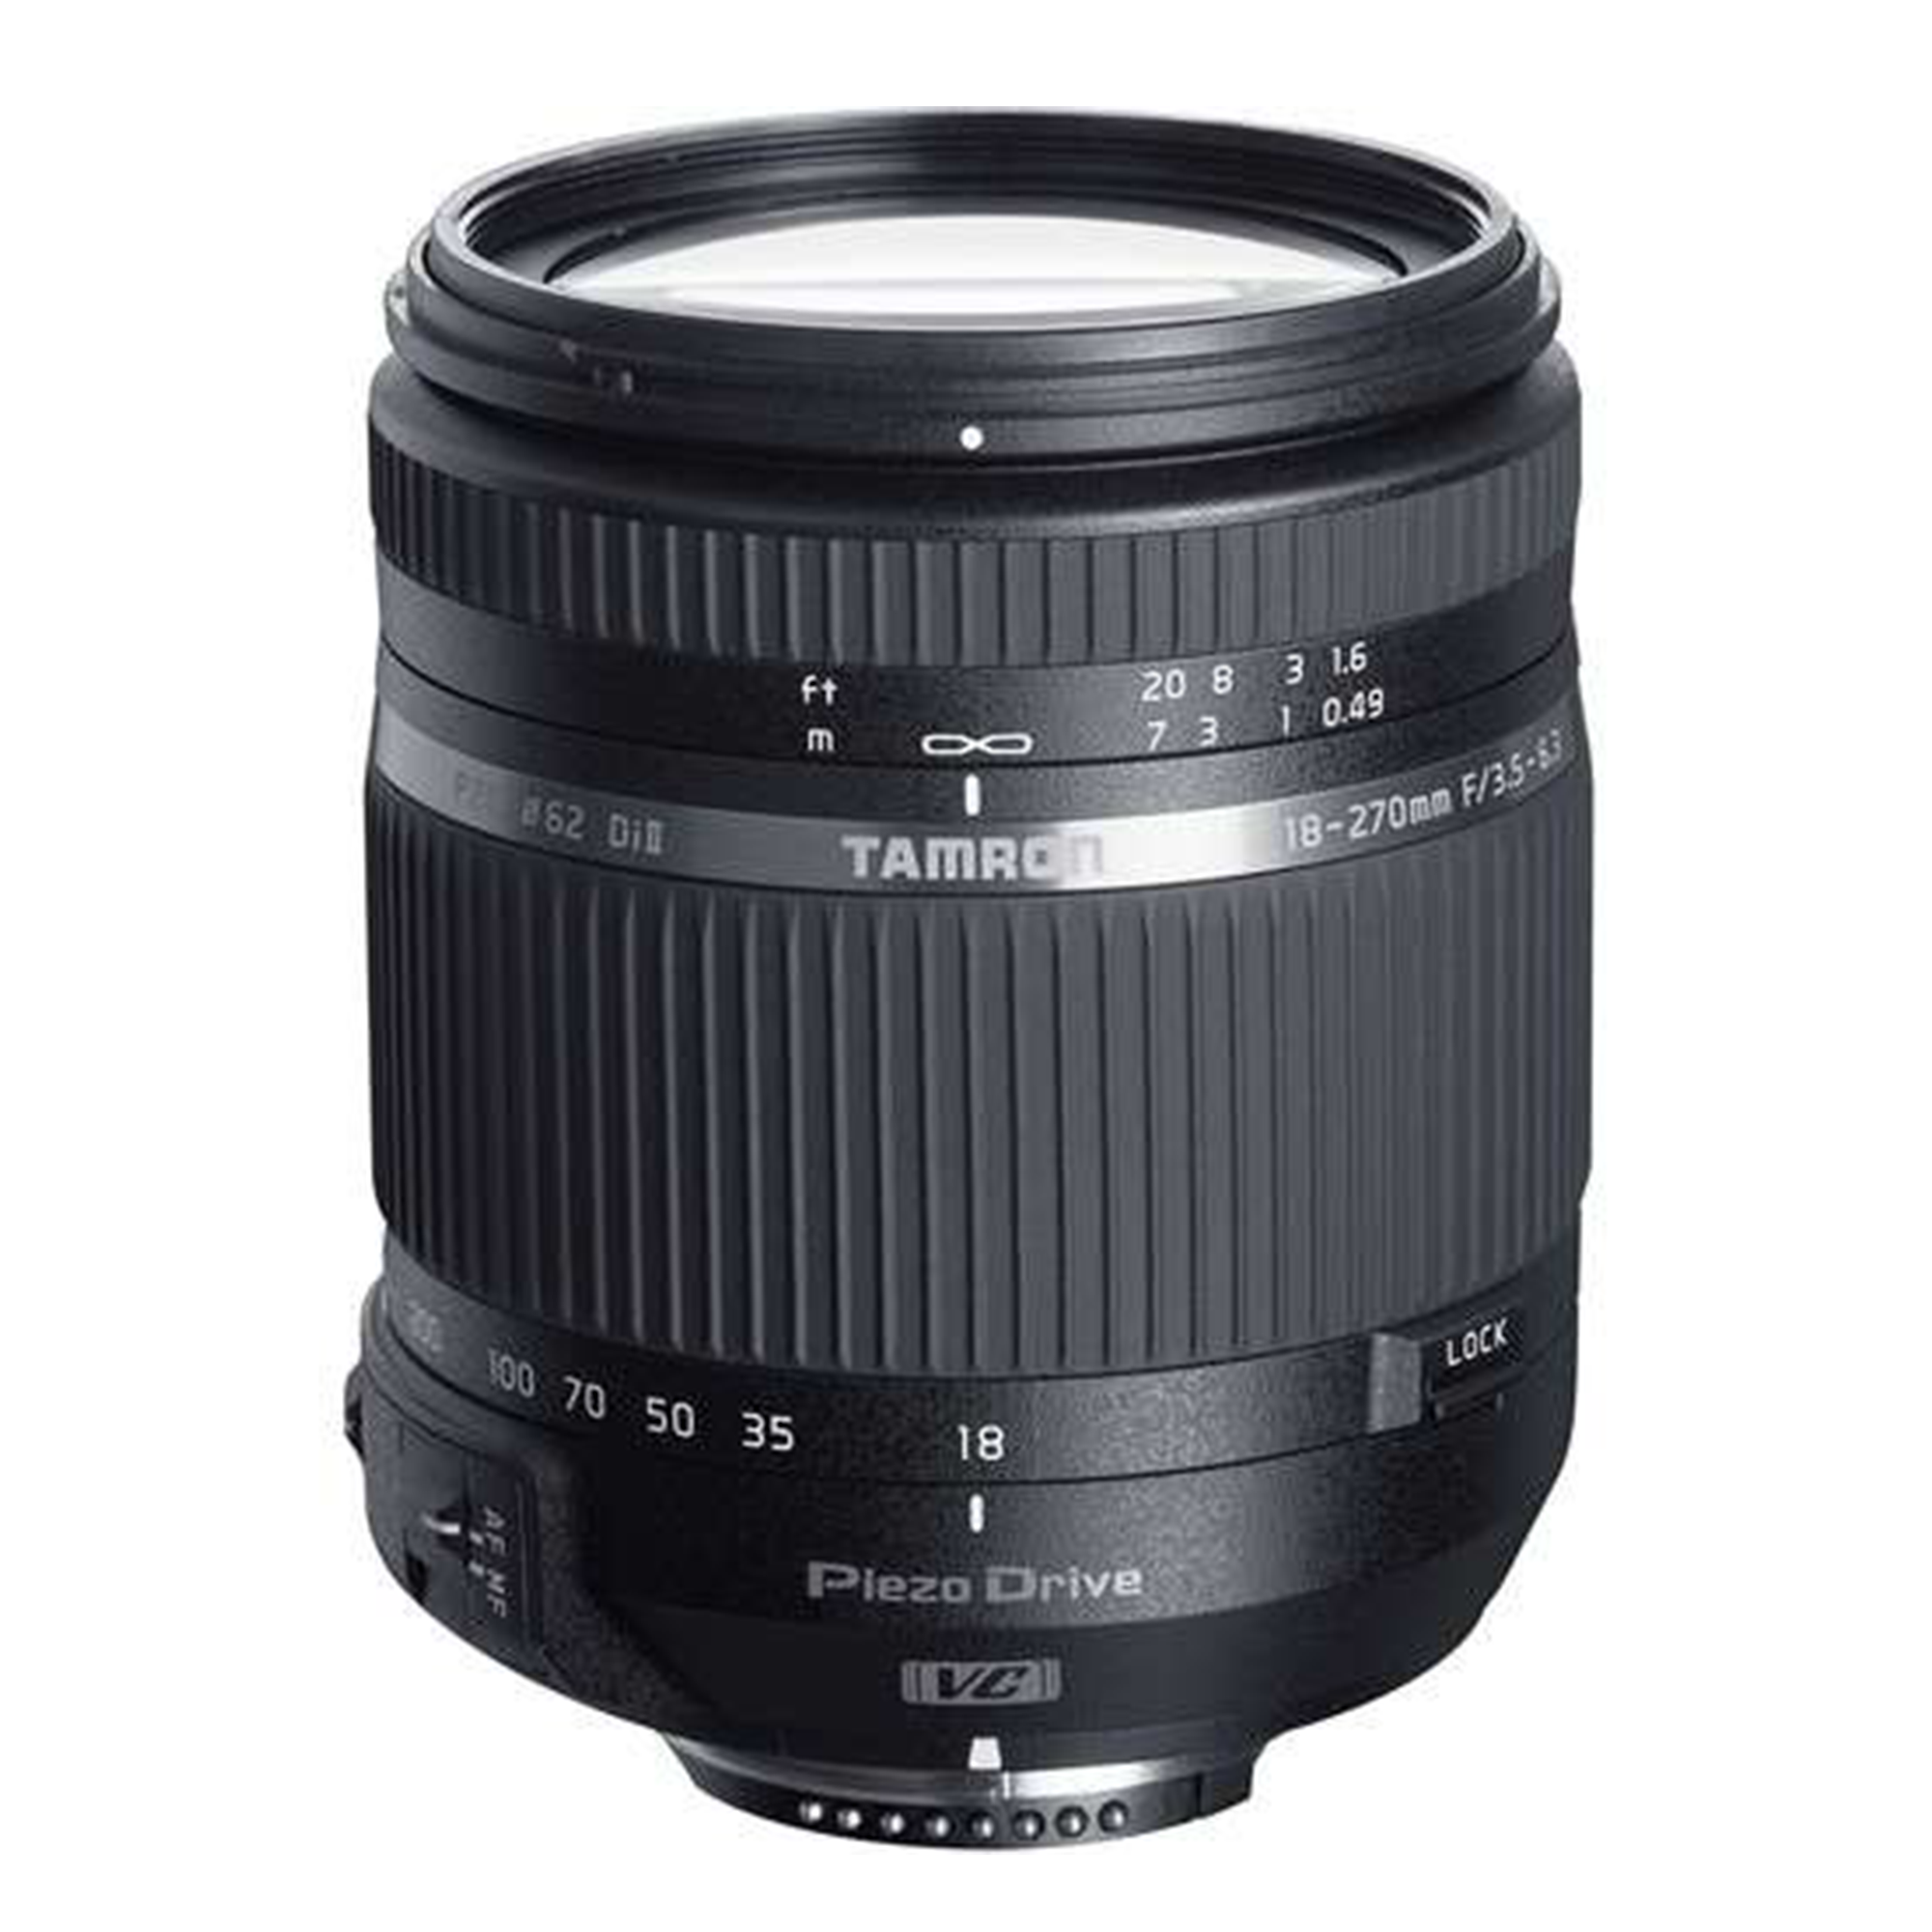 Tamron 18-270mm f/3.5-6.3 Di II VC  Lens for Canon